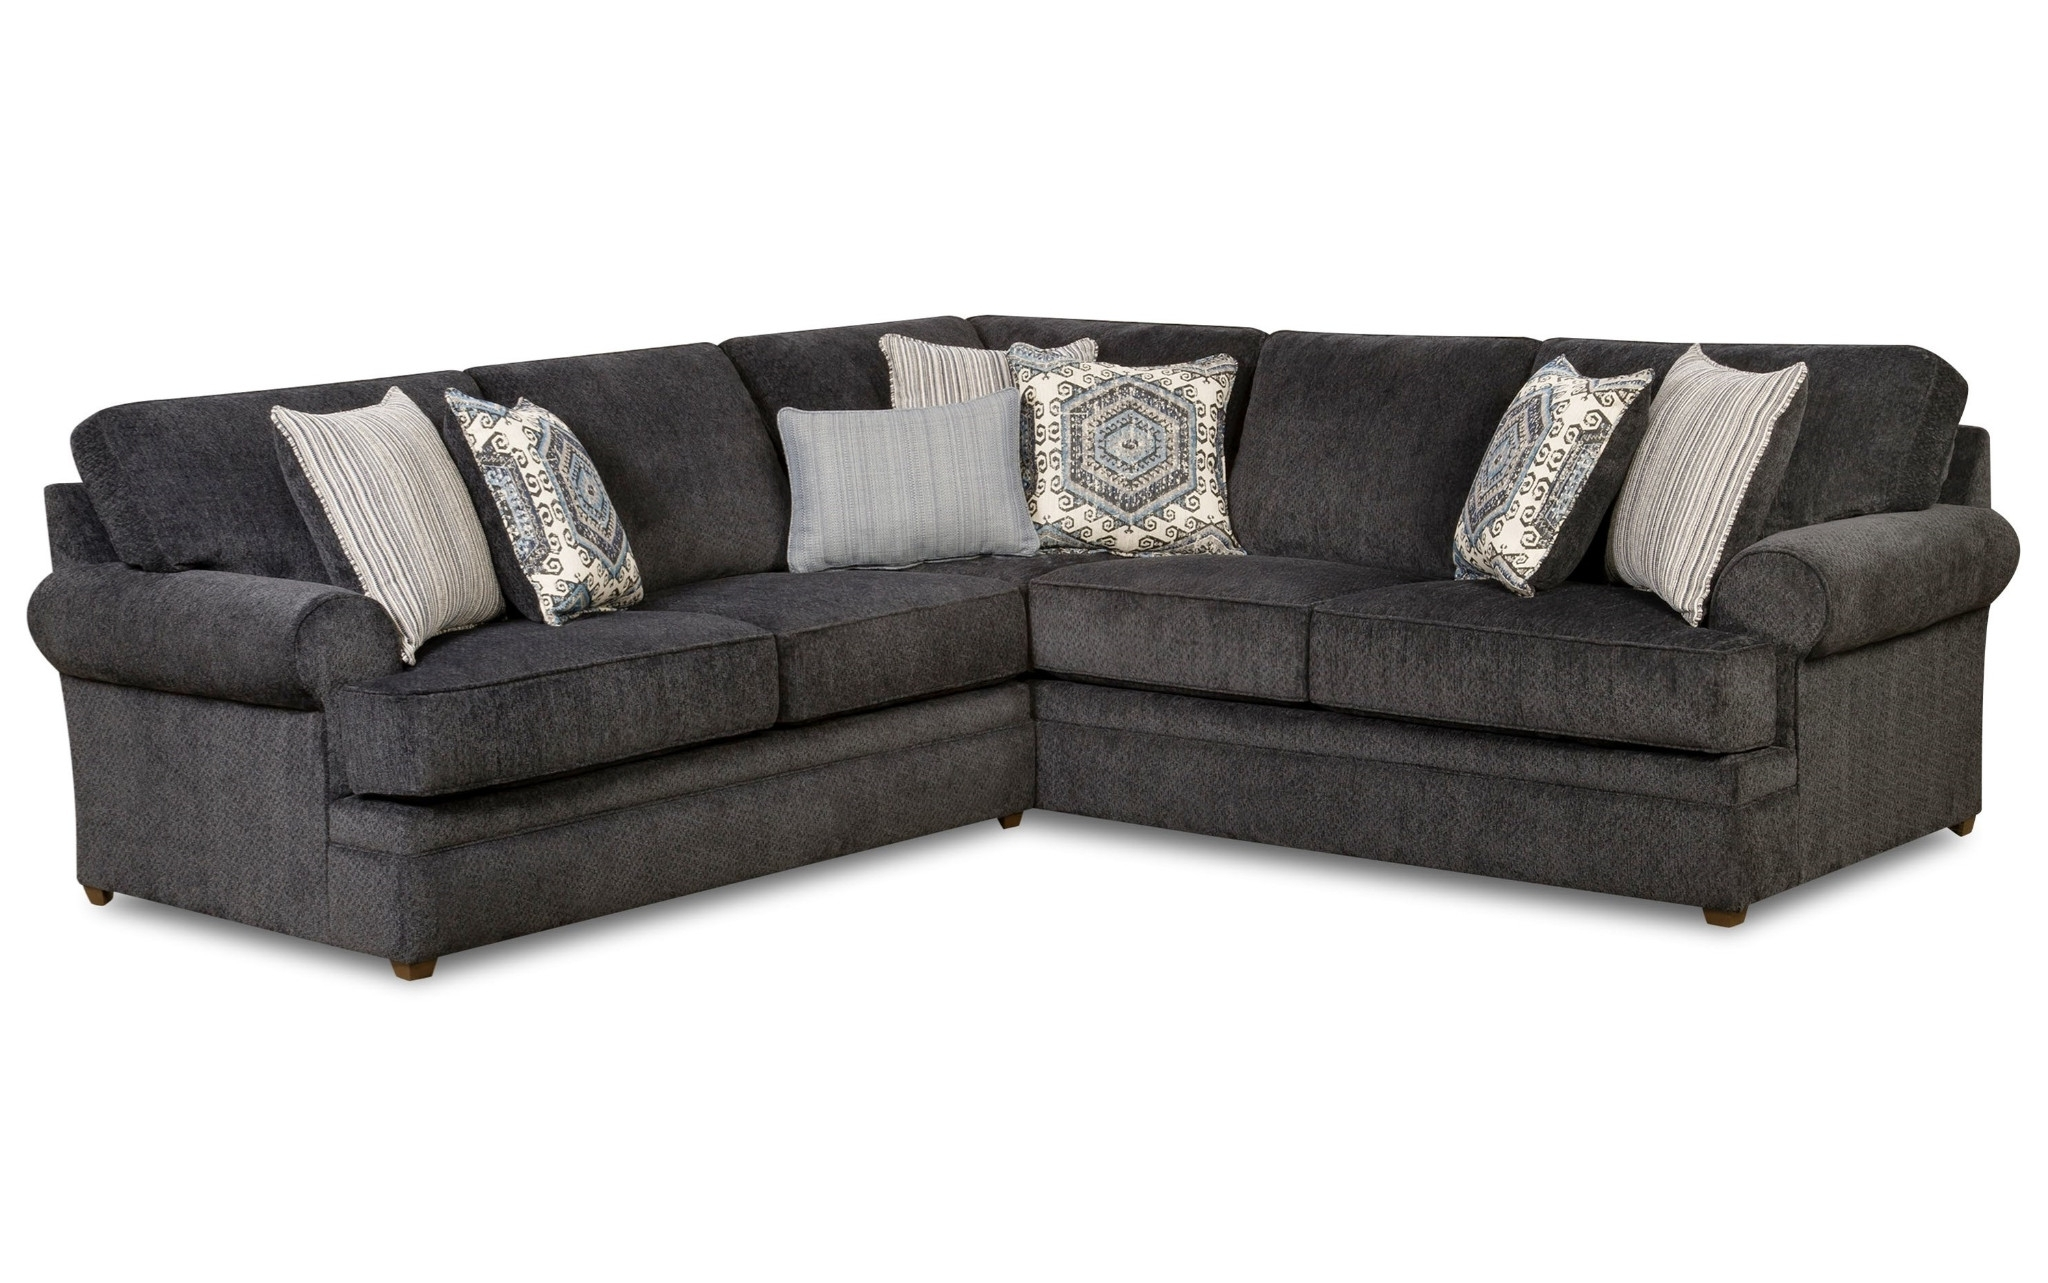 Sectional Sofas In Greensboro Nc With 2017 Bellamy Slate 2 Piece Sectional Beauty Restsimmons $ (View 9 of 15)